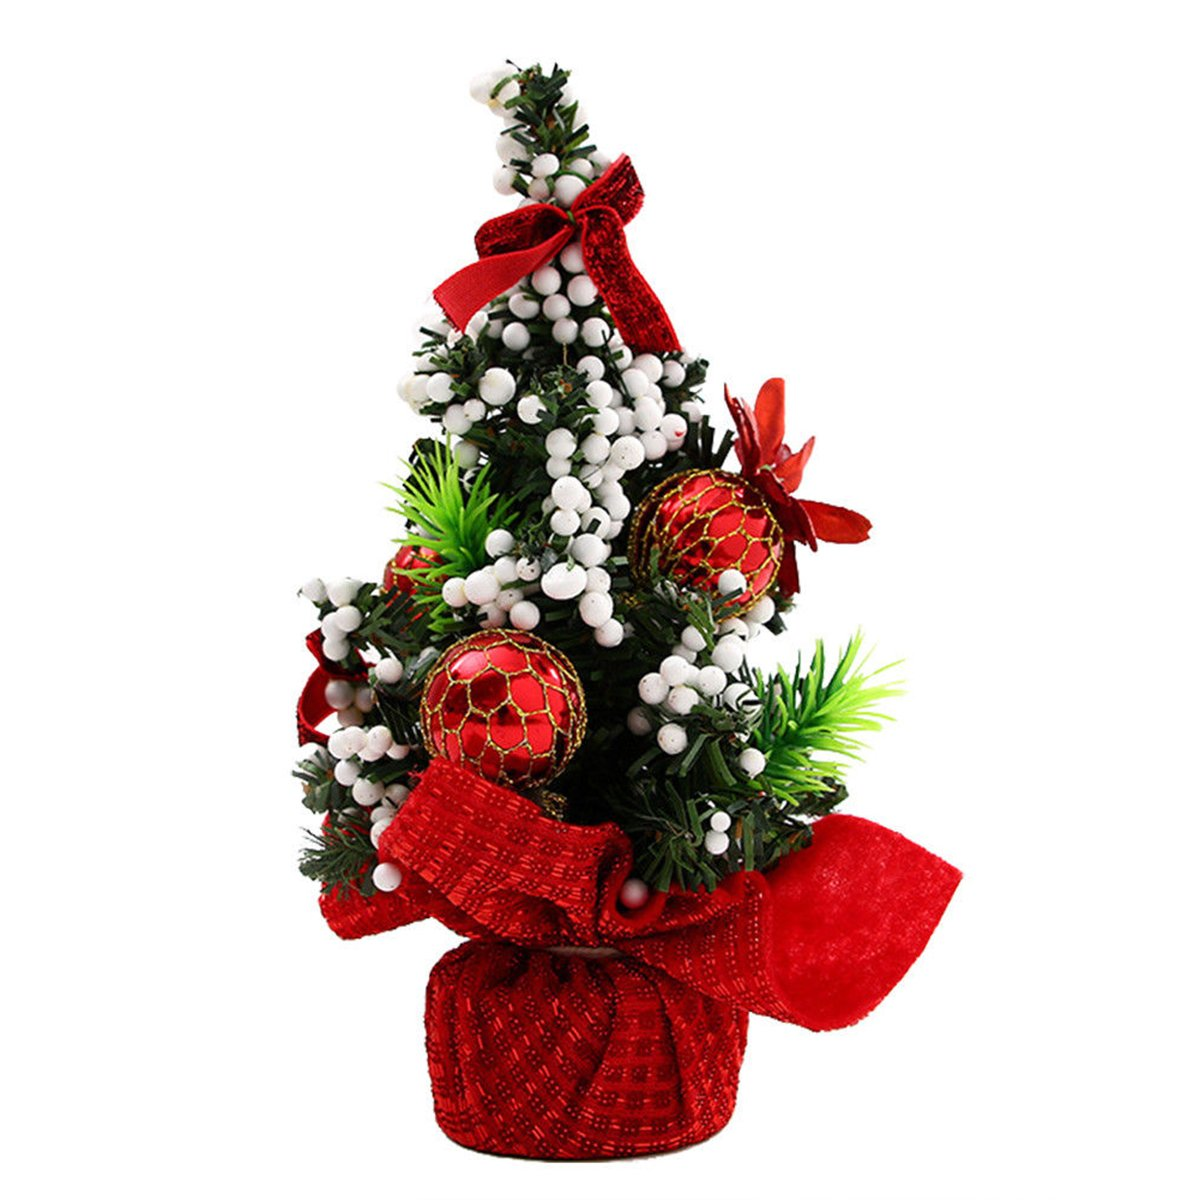 vismile Tabletop Artifical Christmas Tree with Ornament 8.7 Tall